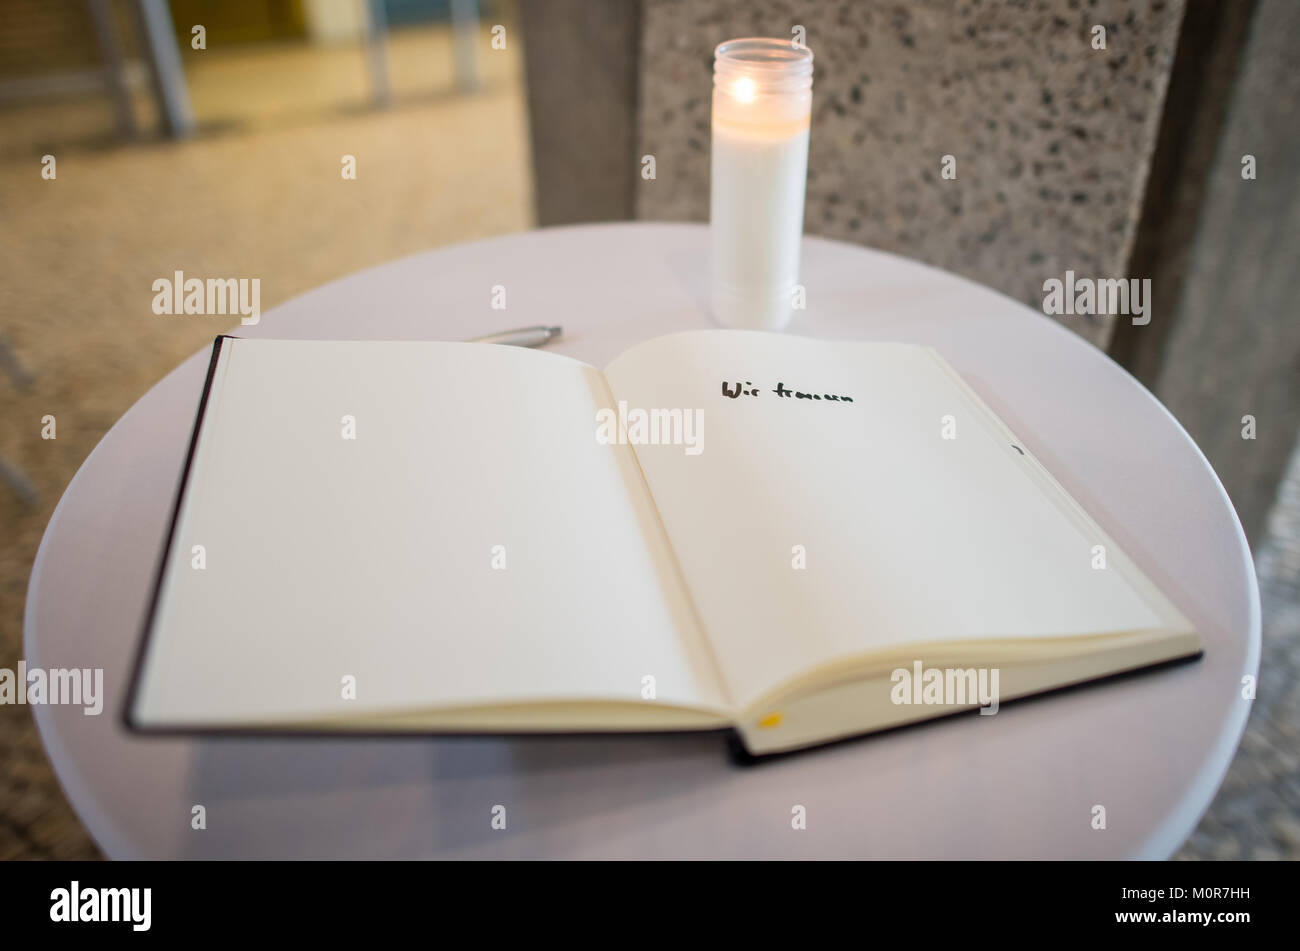 Luenen, Germany. 24th Jan, 2018. The city's condolence book, with the entry 'We mourn', lying on a table - Stock Image